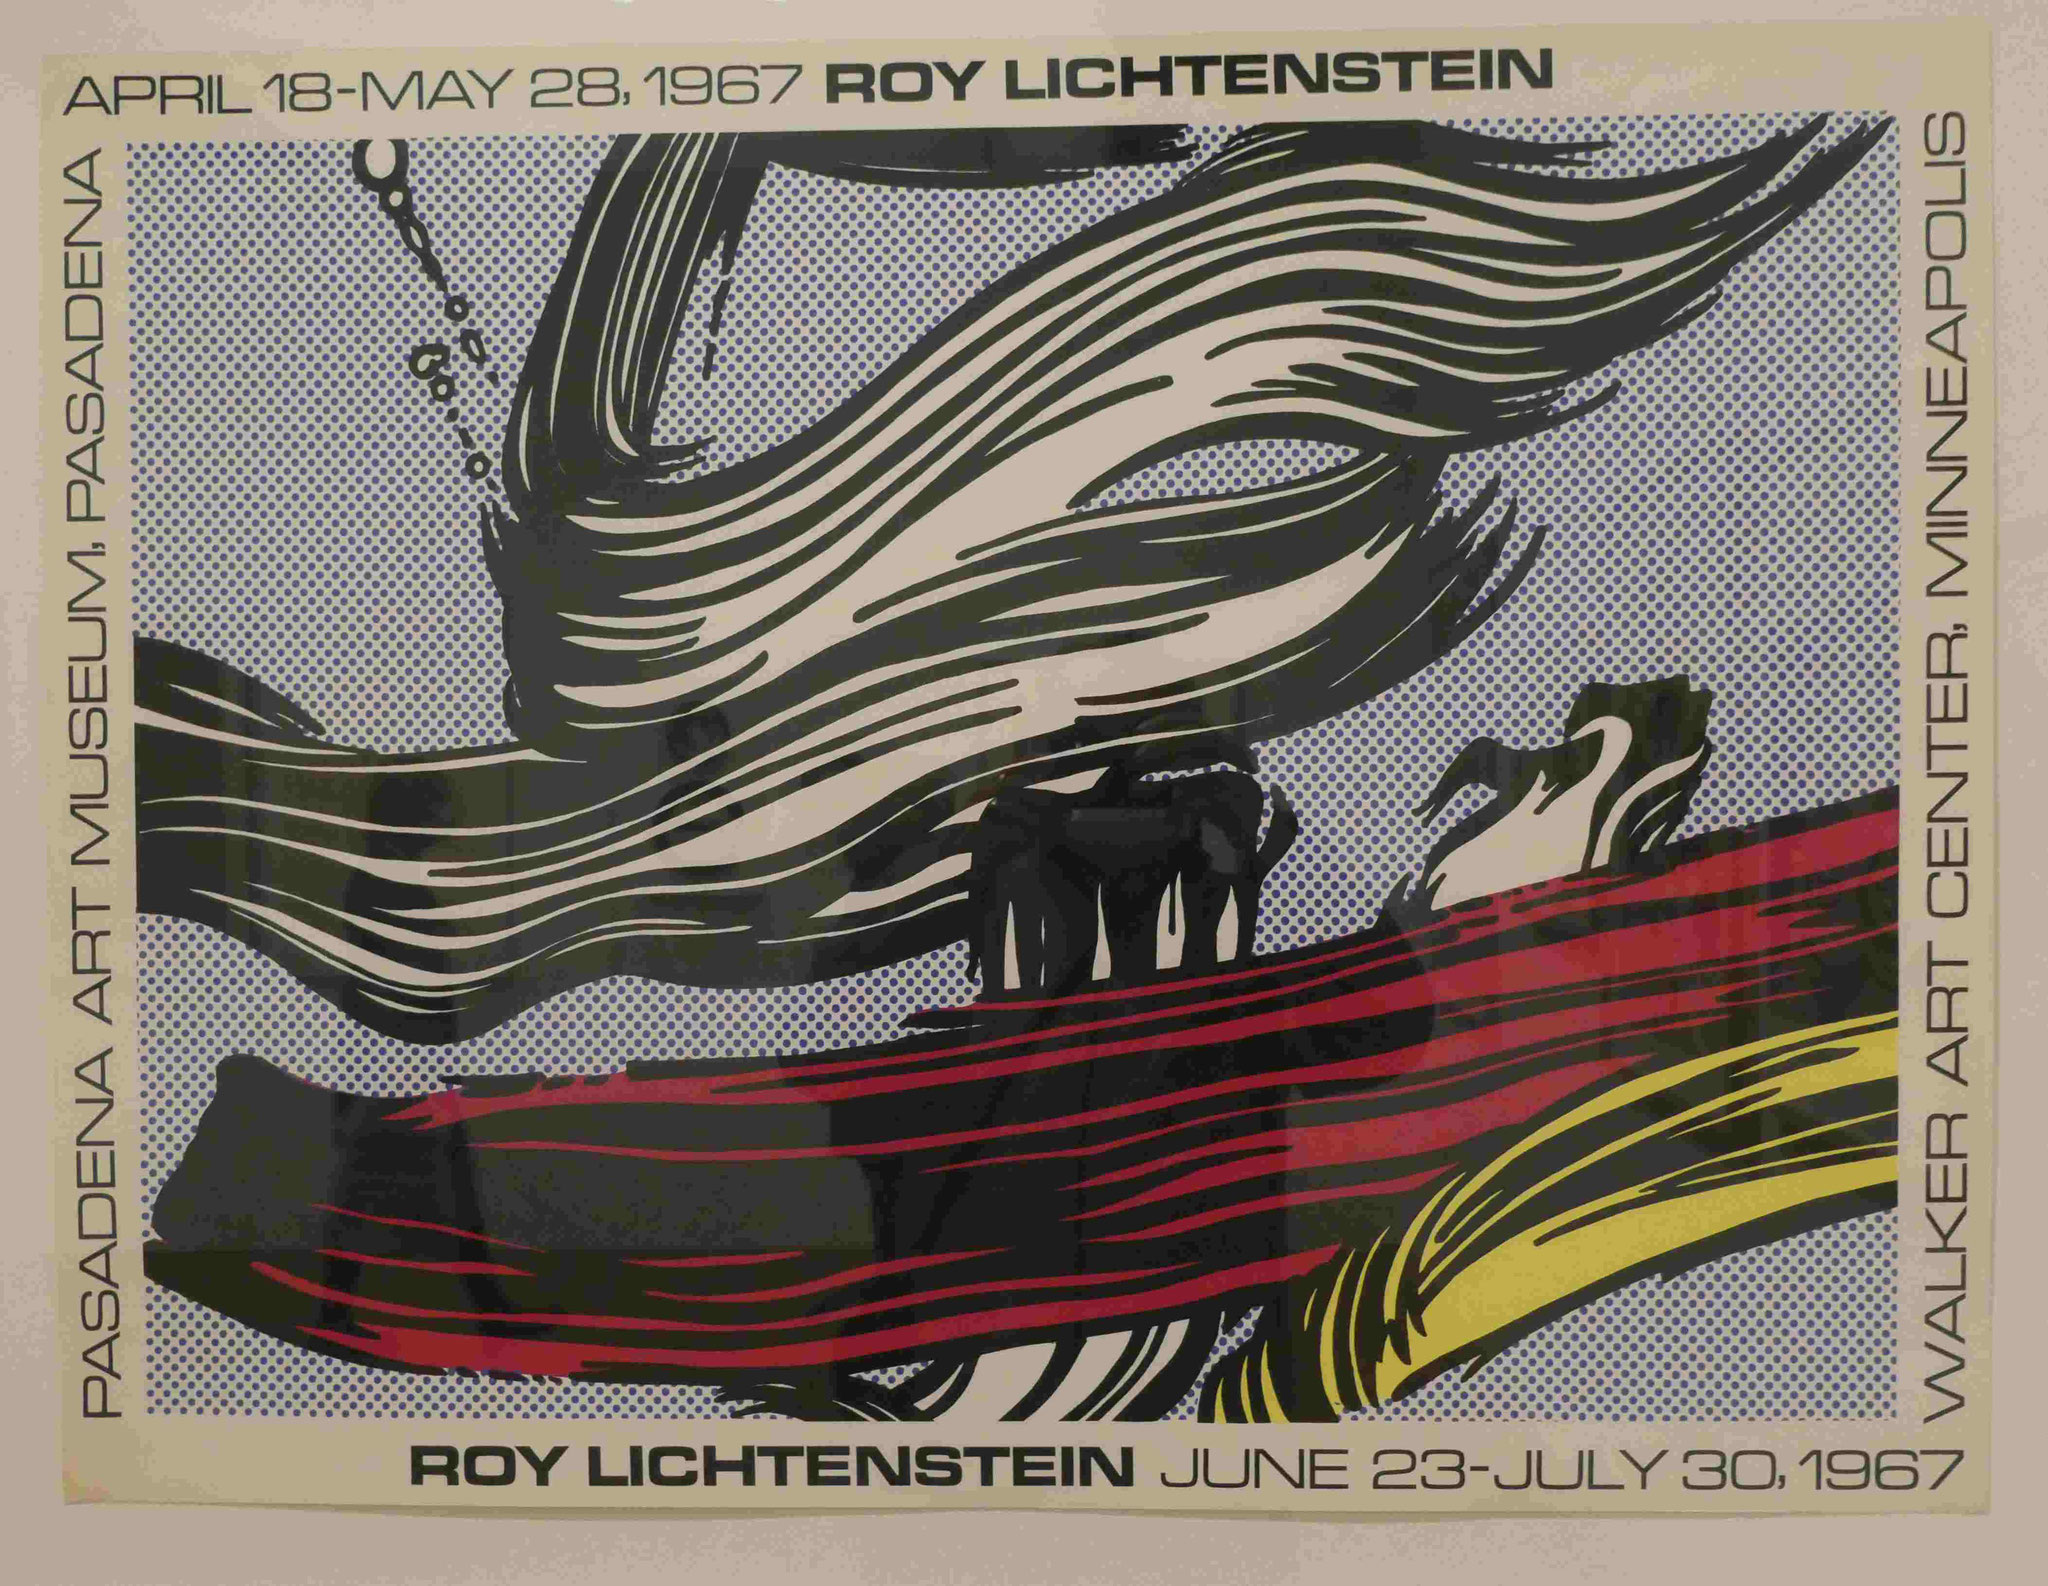 Roy Lichtenstein, Brushstokes Poster, Siebdruck 1967, Nationalgalerie Berlin